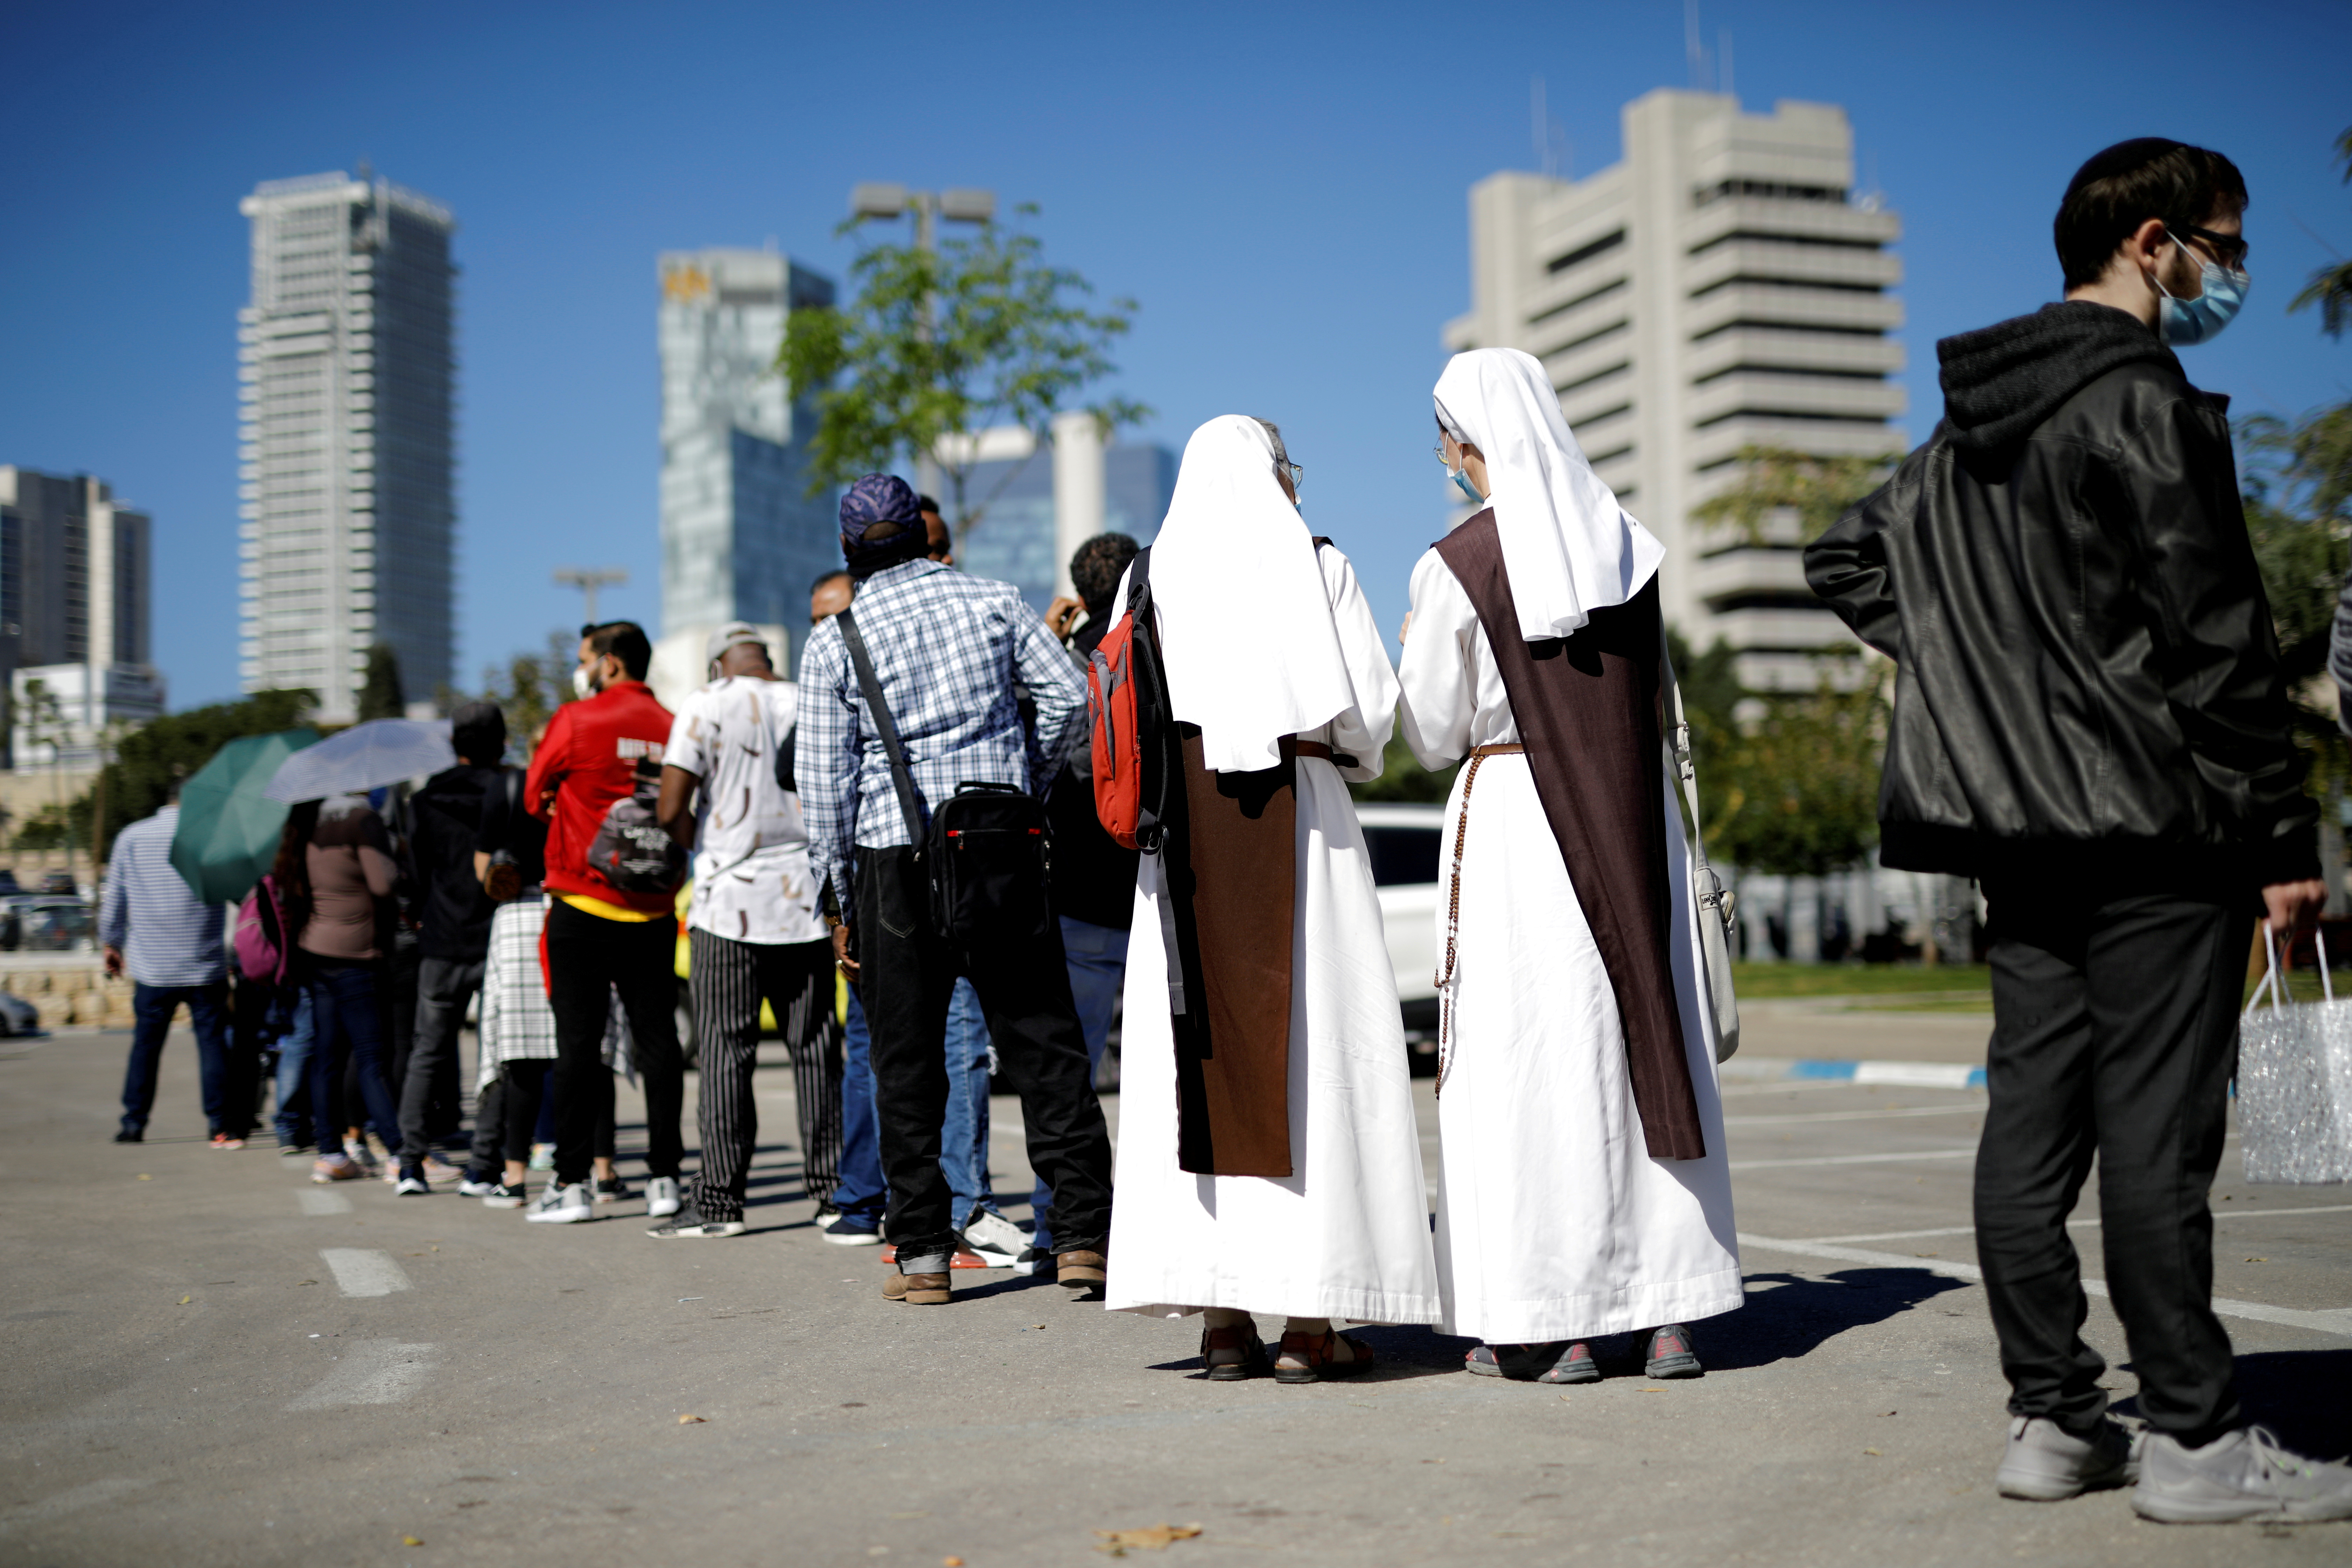 Nuns stand in a queue outside a newly-opened centre administering vaccinations against the coronavirus disease (COVID-19) in a neighbourhood with a high residency of foreign nationals, including migrant workers, in Tel Aviv, Israel February 9, 2021. REUTERS/Amir Cohen/